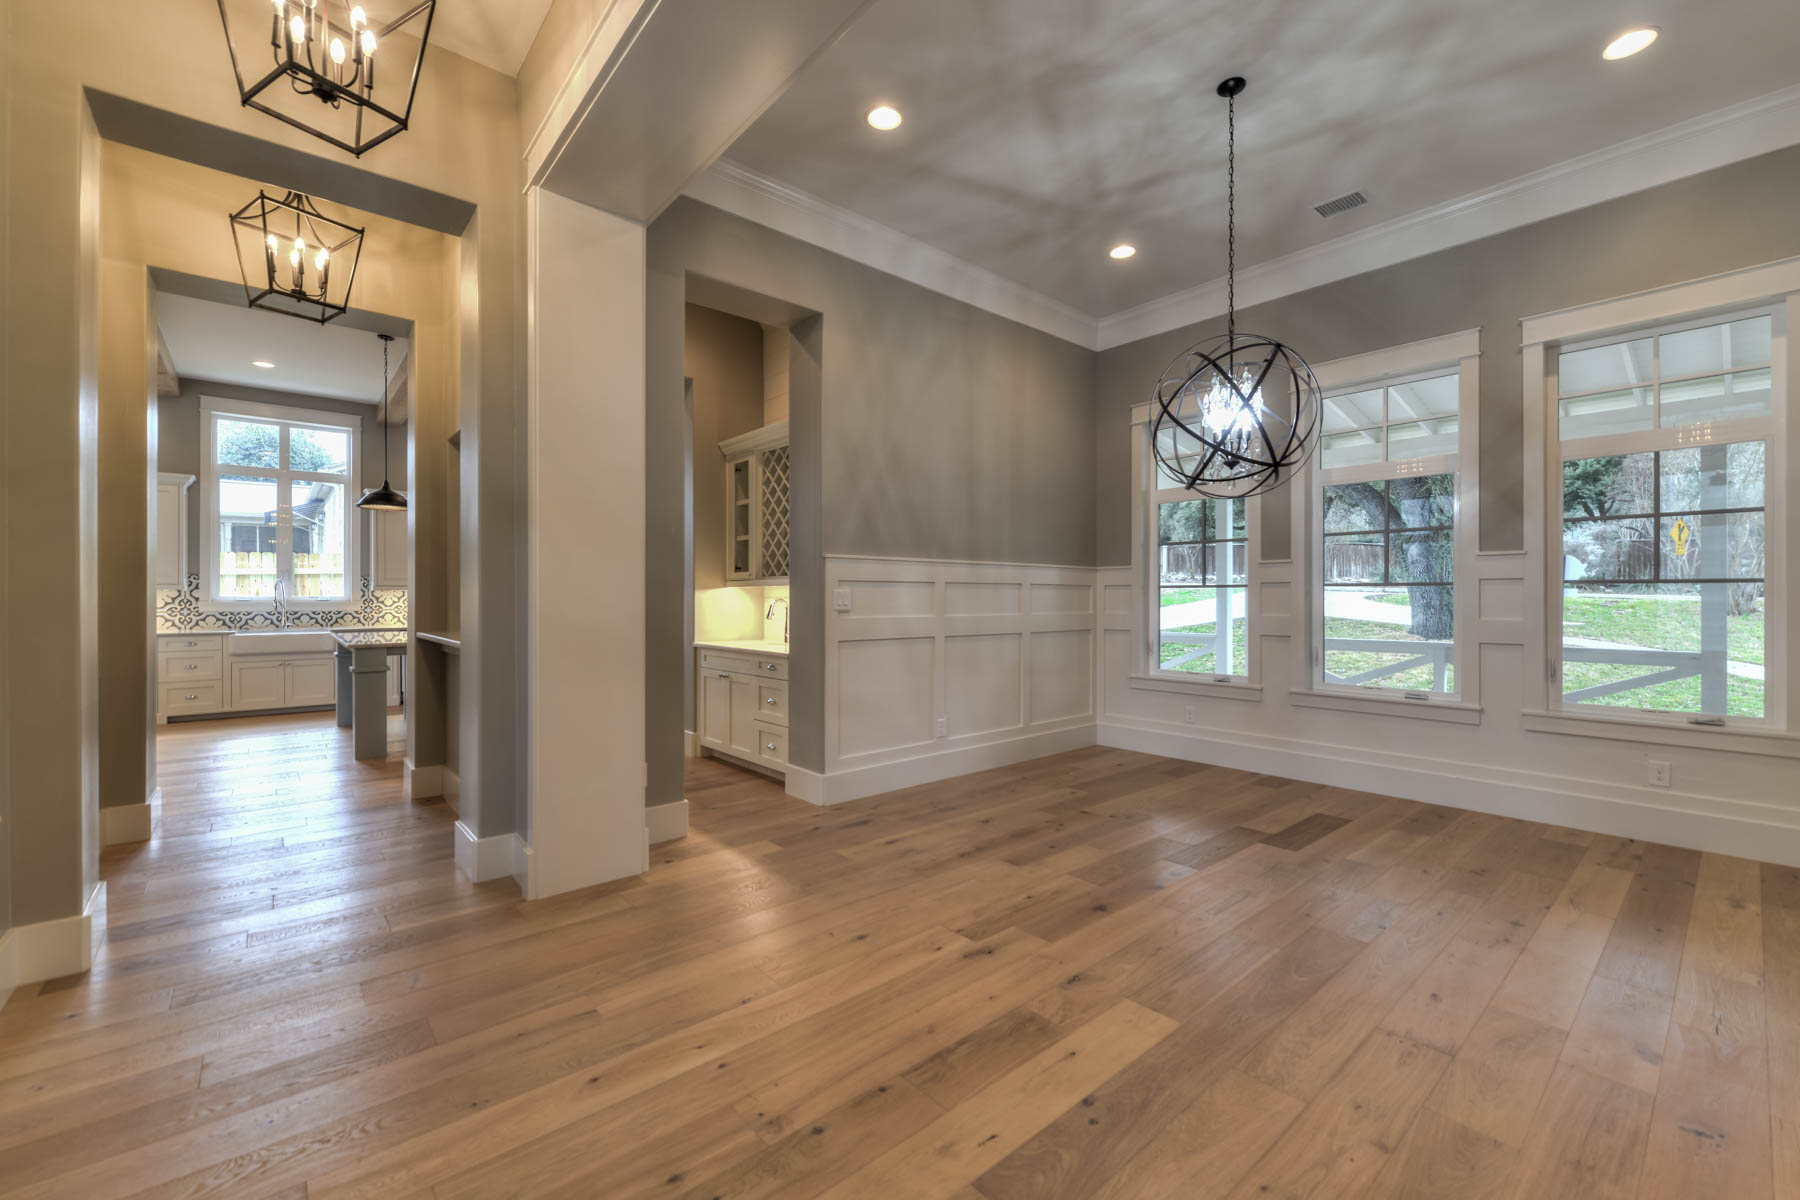 Additional photo for property listing at Gorgeous New Construction in Terrell Hills 1016 Garraty Rd San Antonio, Texas 78209 United States